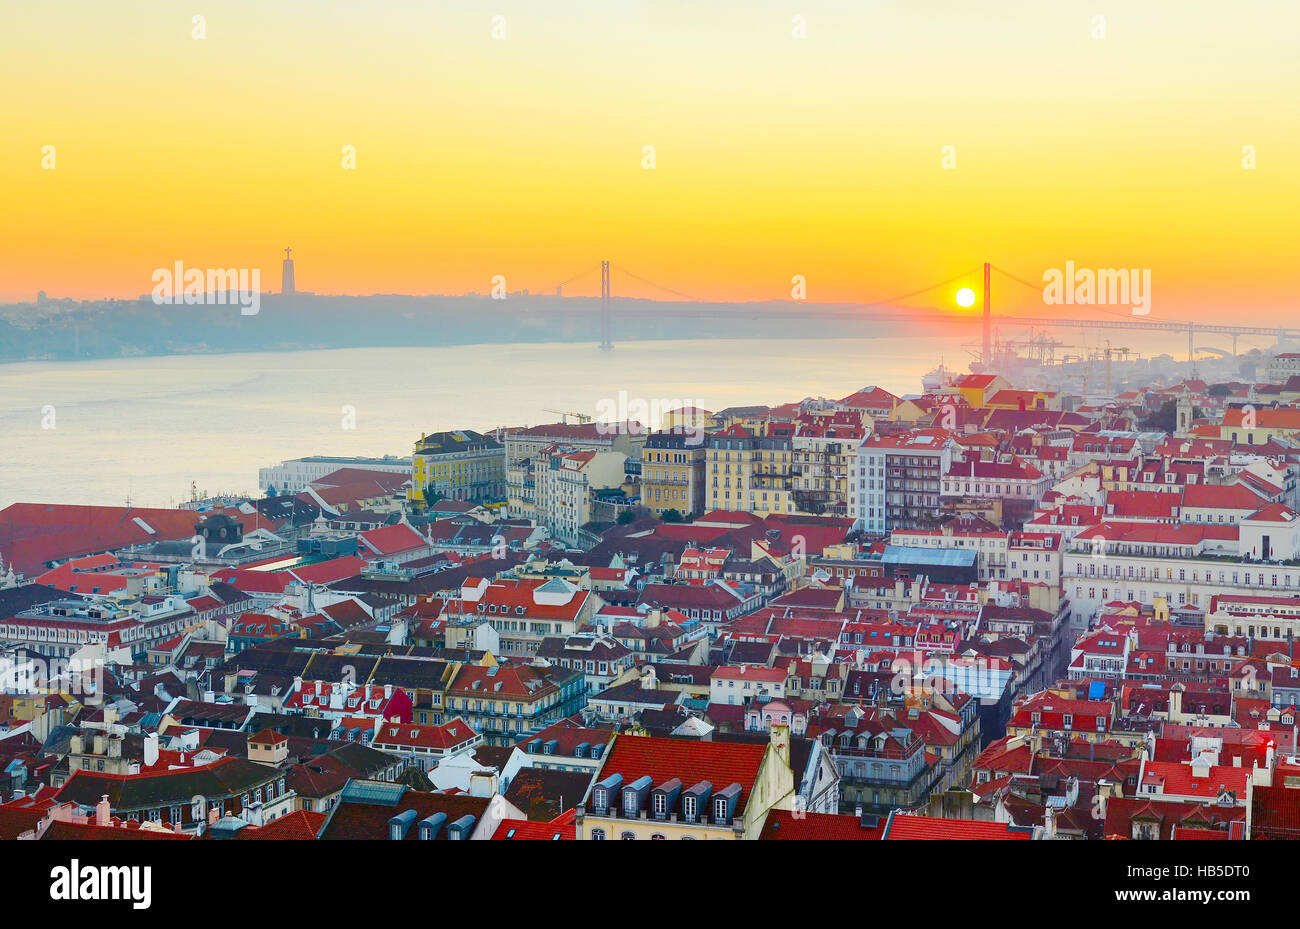 Lisbon aerial view at sunset. Portugal - Stock Image